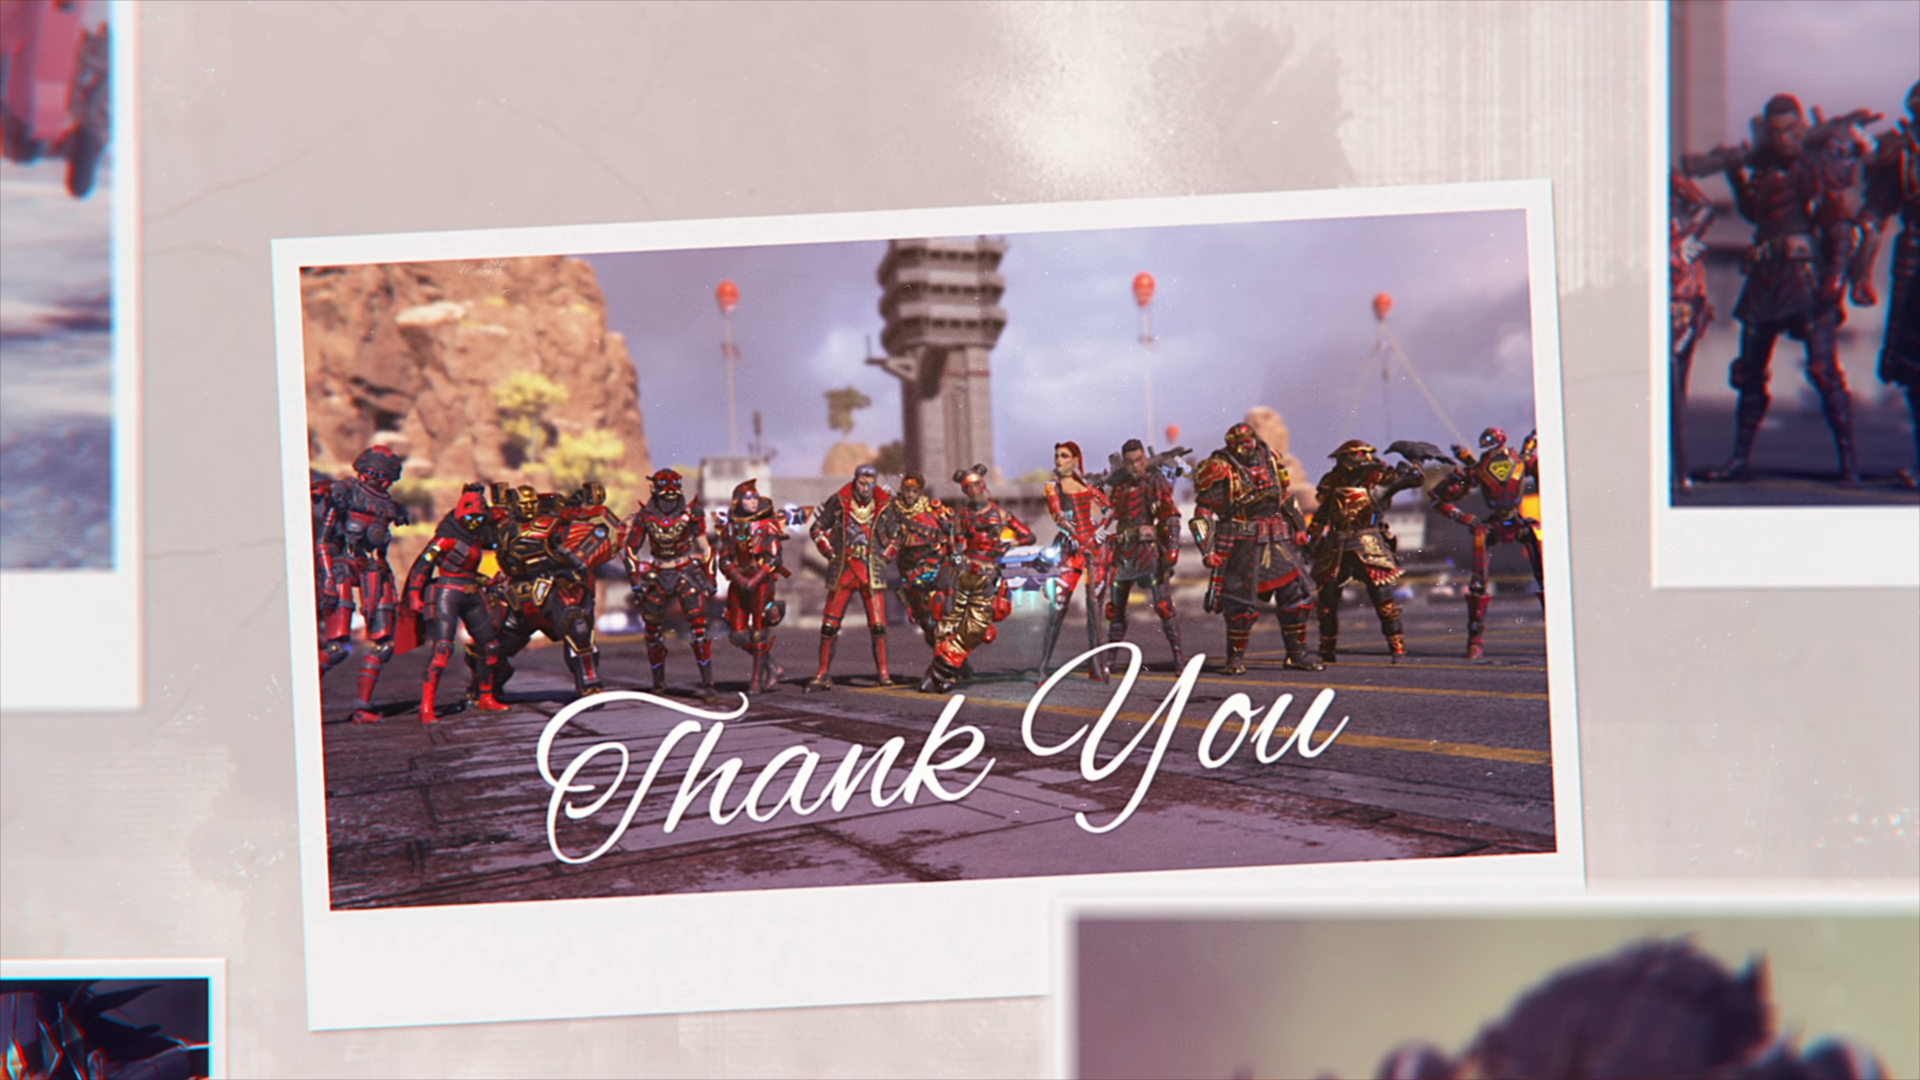 Apex Legends extends Anniversary Event extended by a week, runs until March 2